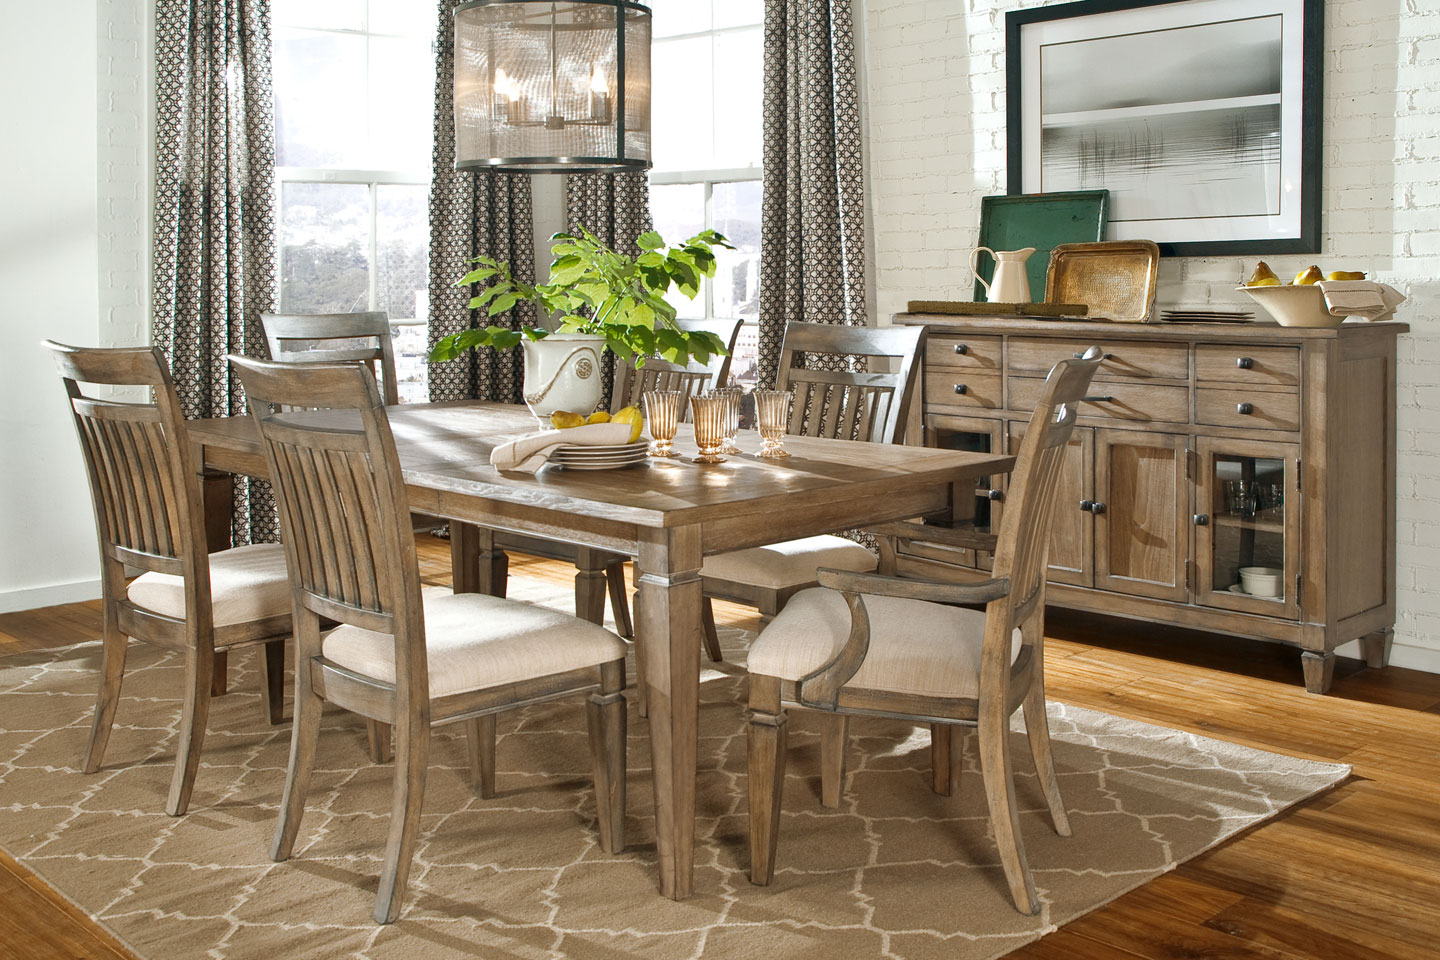 Rustic Dining Room Table gavin rustic dining room set - dining furniture